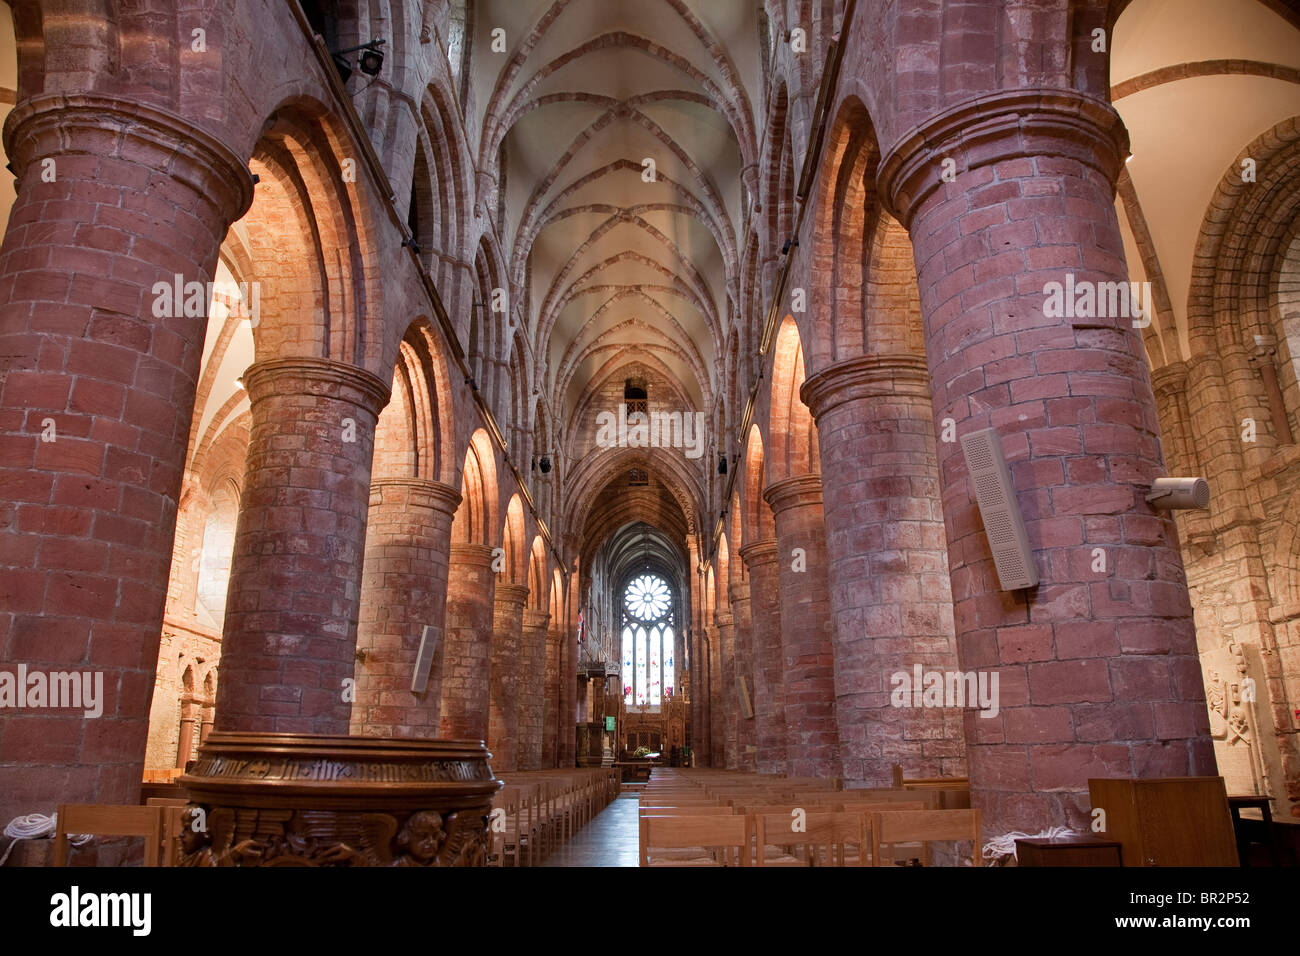 Kirkwall Cathedral on the Orkney Islands, Scotland - Stock Image